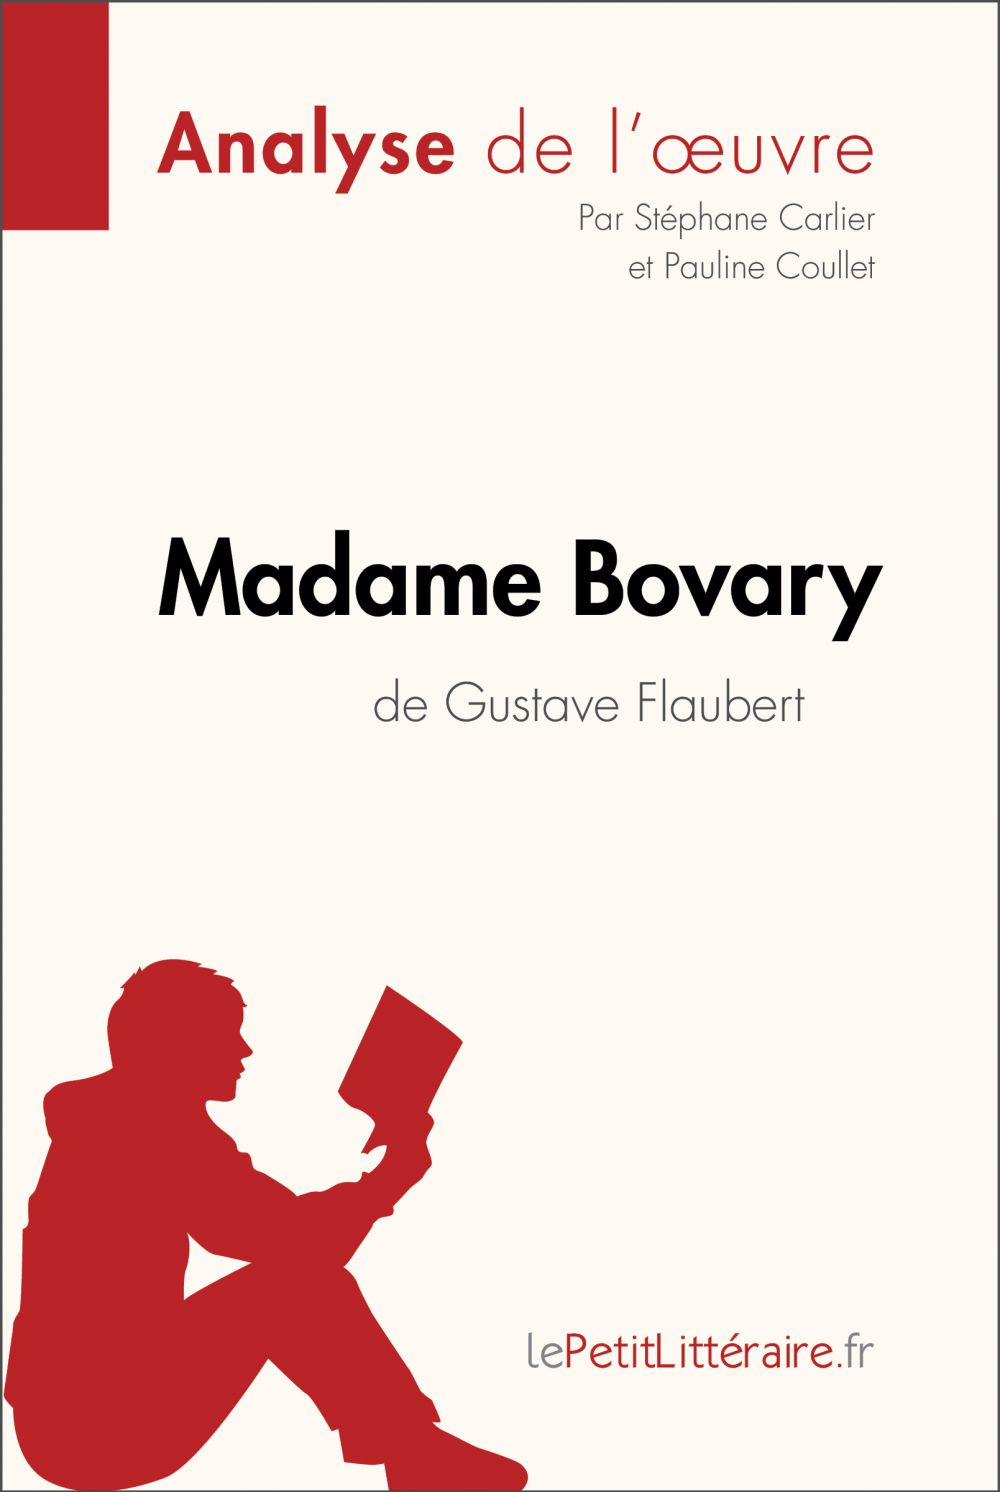 Madame Bovary de Gustave Flaubert (Analyse de l'oeuvre)